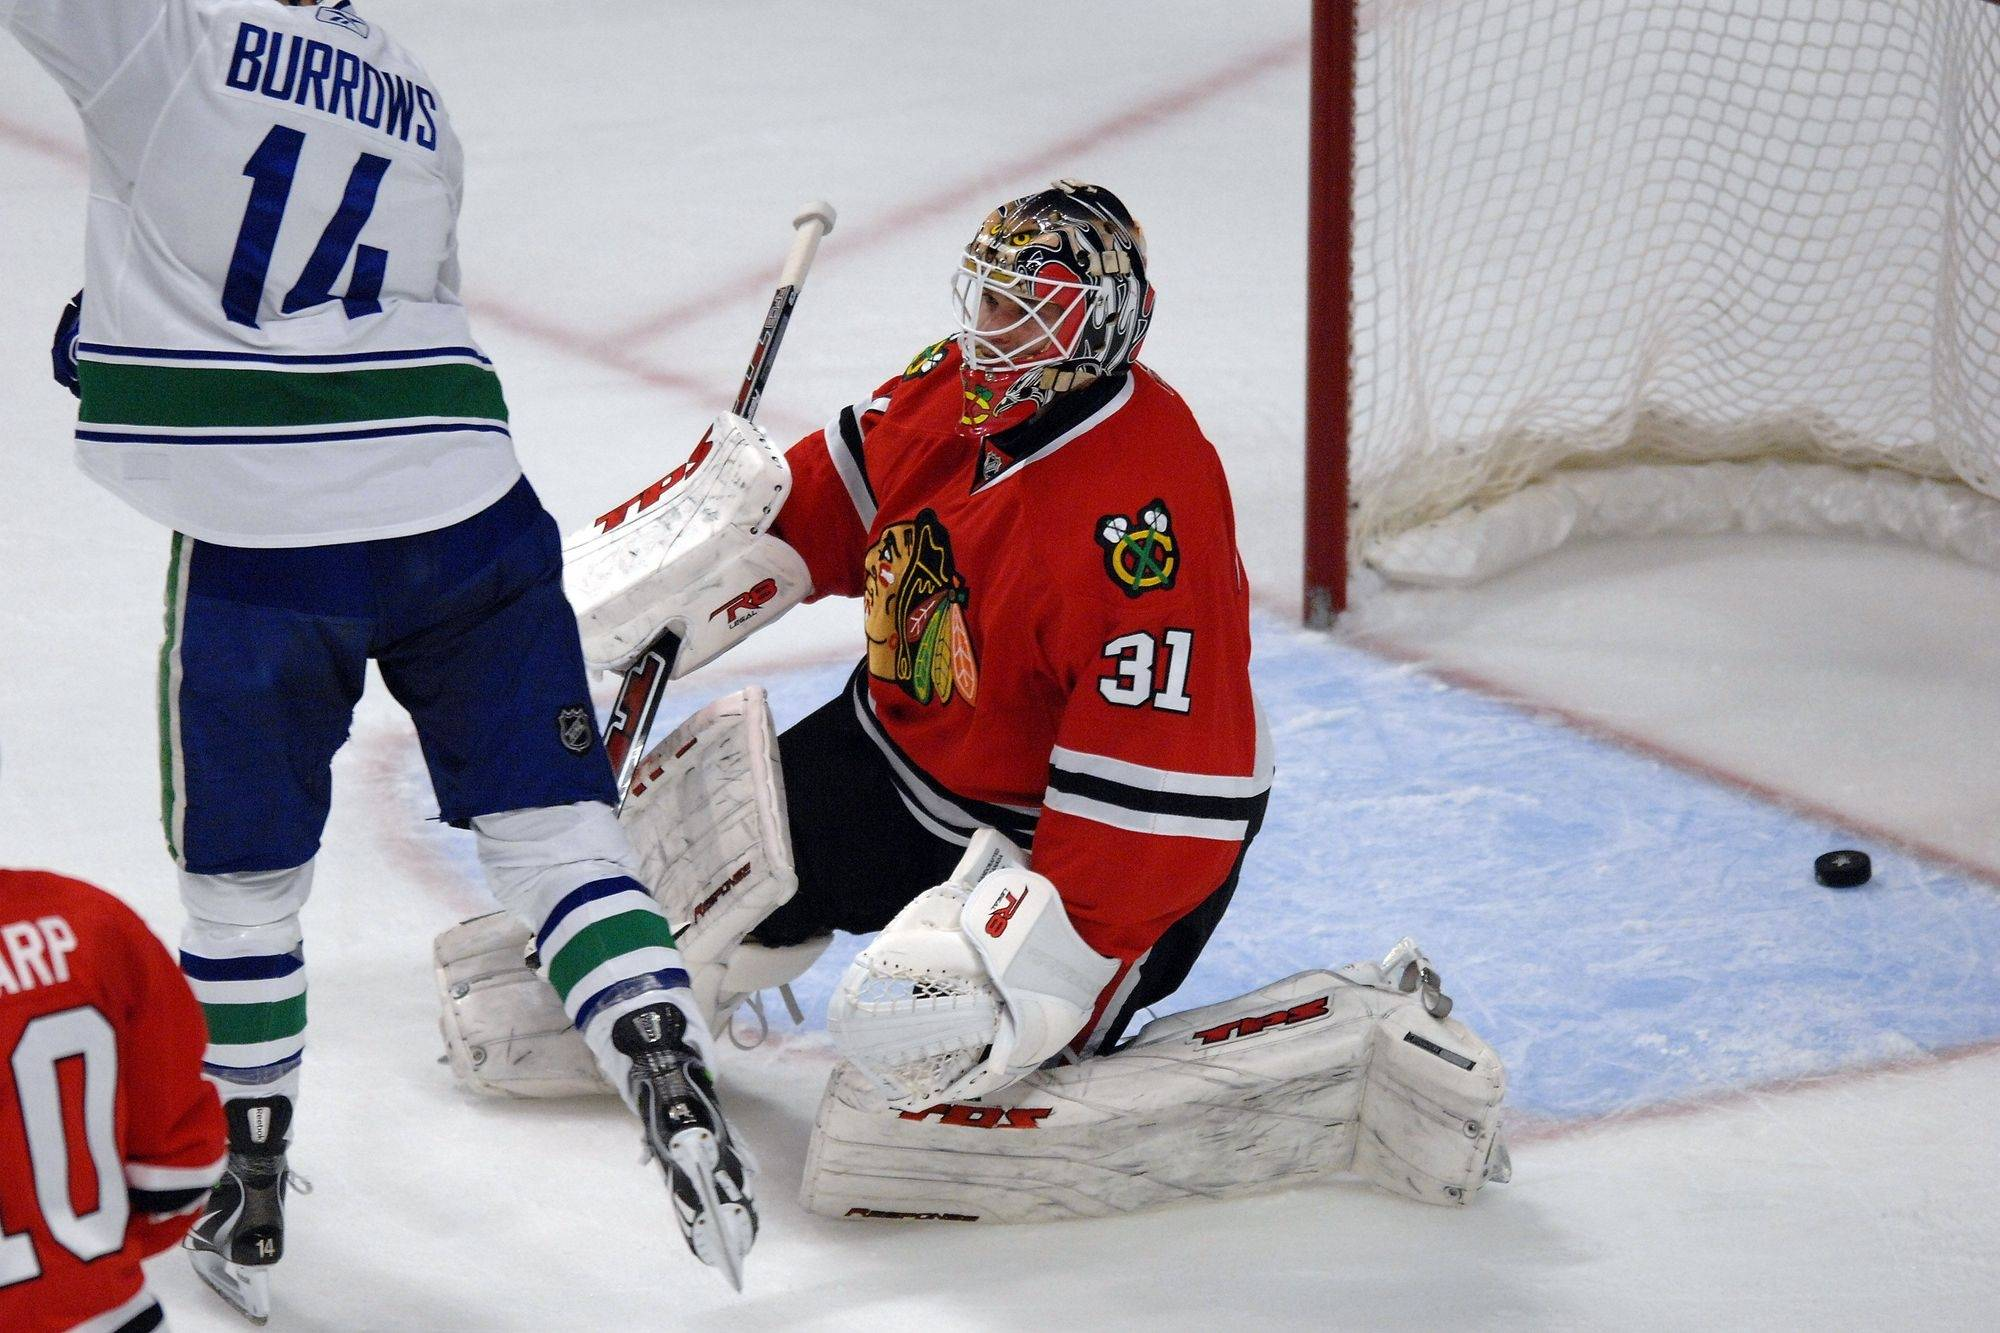 Hawks goalie Antti Niemi watches as Vancouver starts to celebrate a first period with this goal.